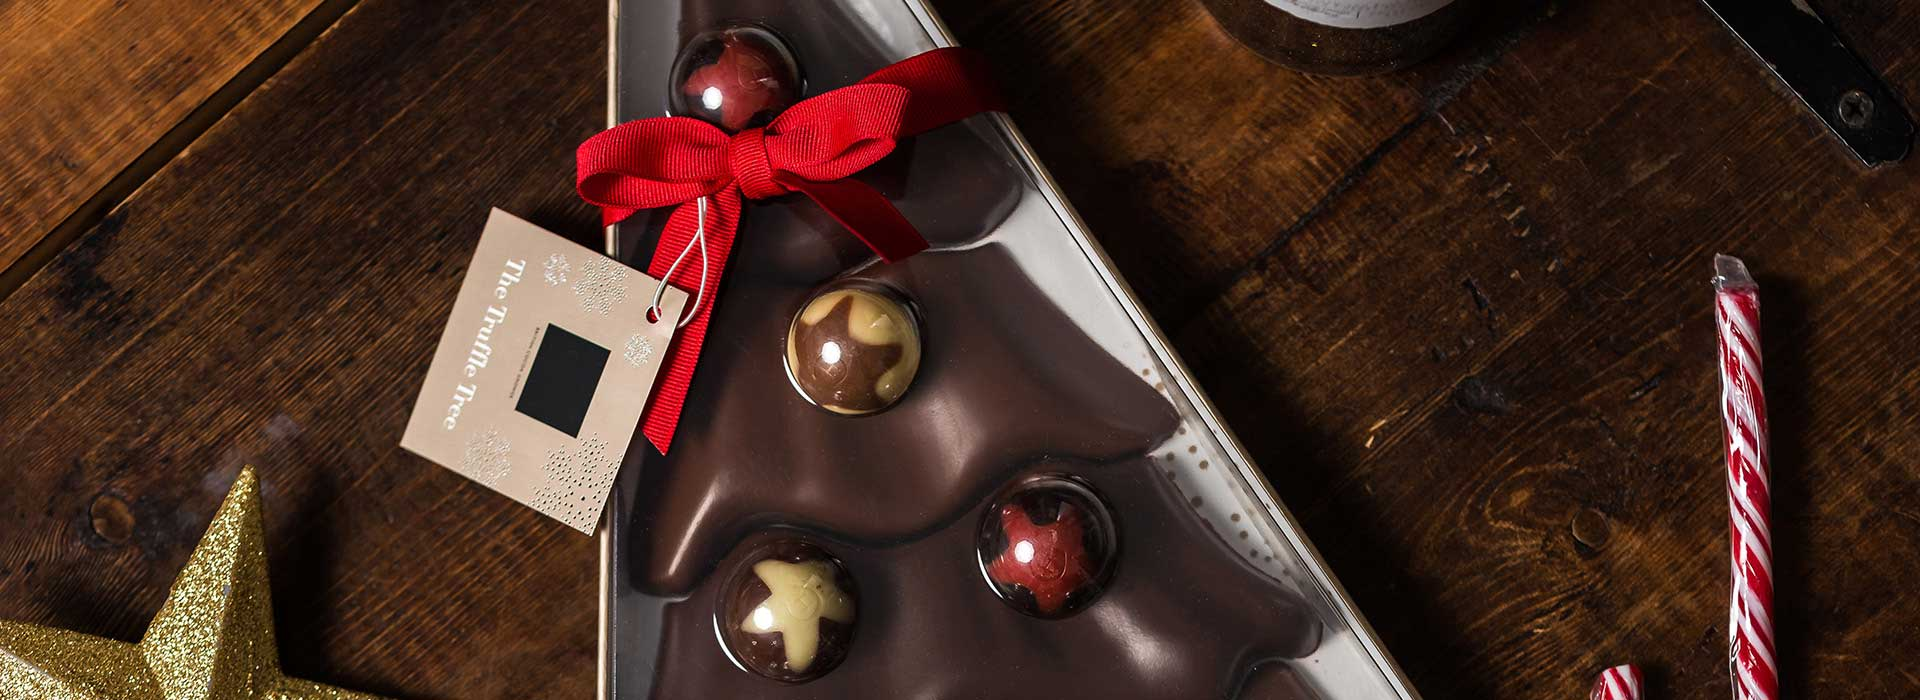 Chocolate luxury recyclable packaging